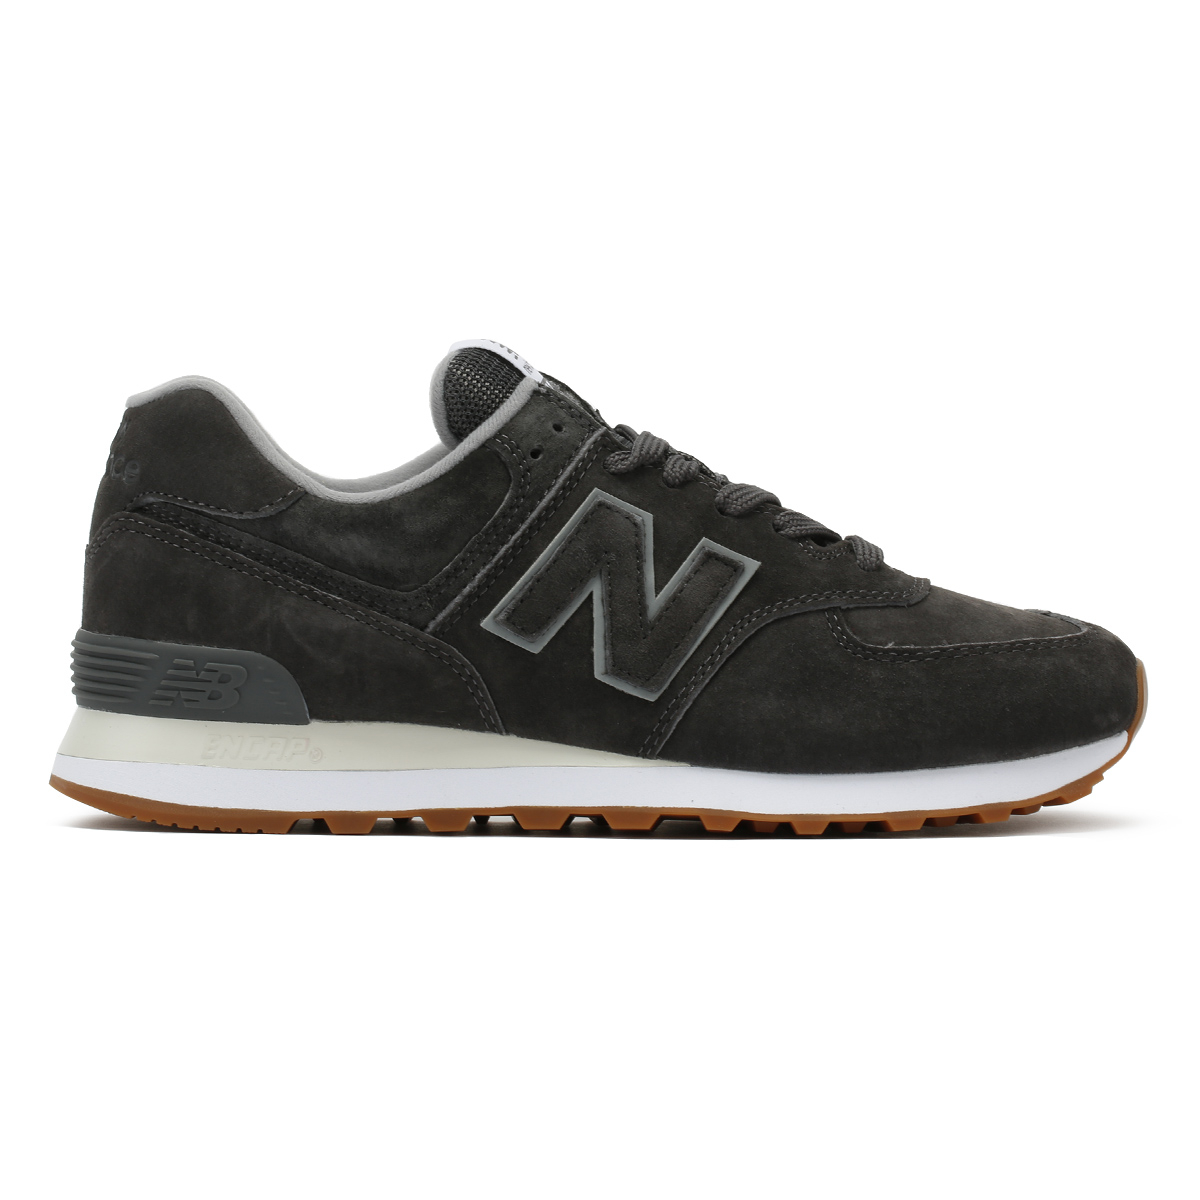 New Grey Balance Mens Trainers Castlerock Grey New 574 Lace Up Classic Sport Casual Shoes b47e5b